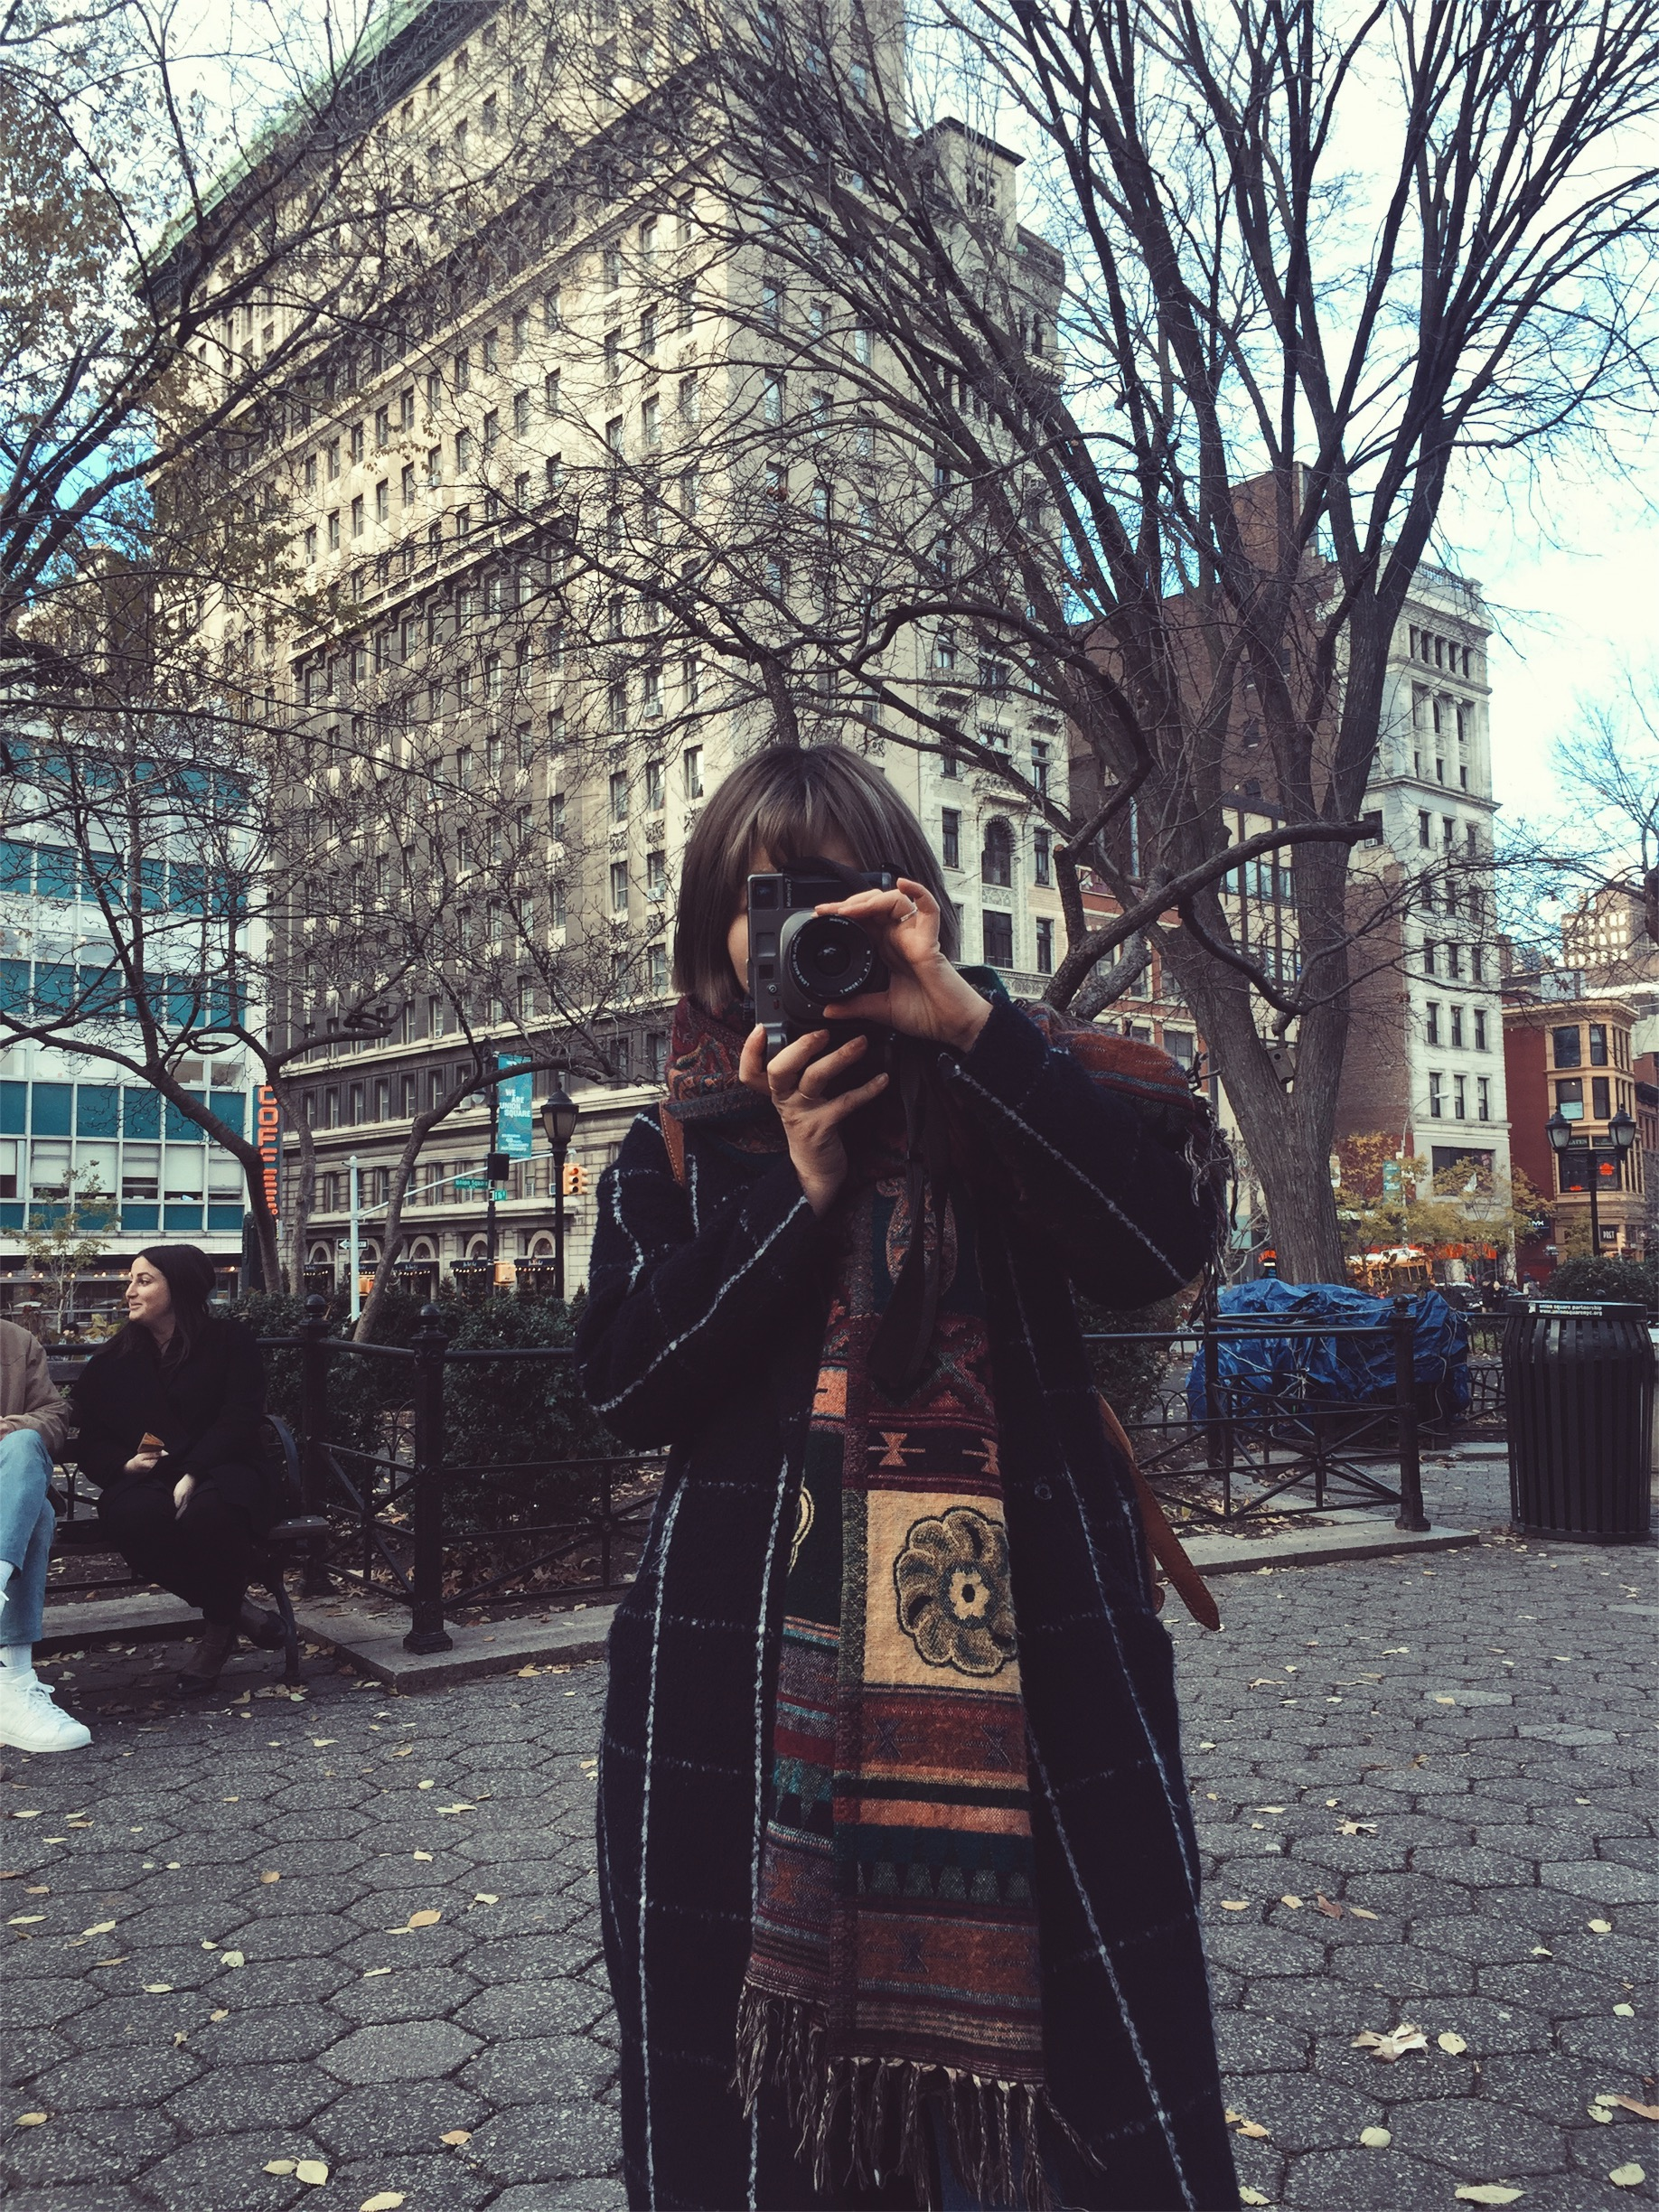 I showed her around town and she photographed me in the process.